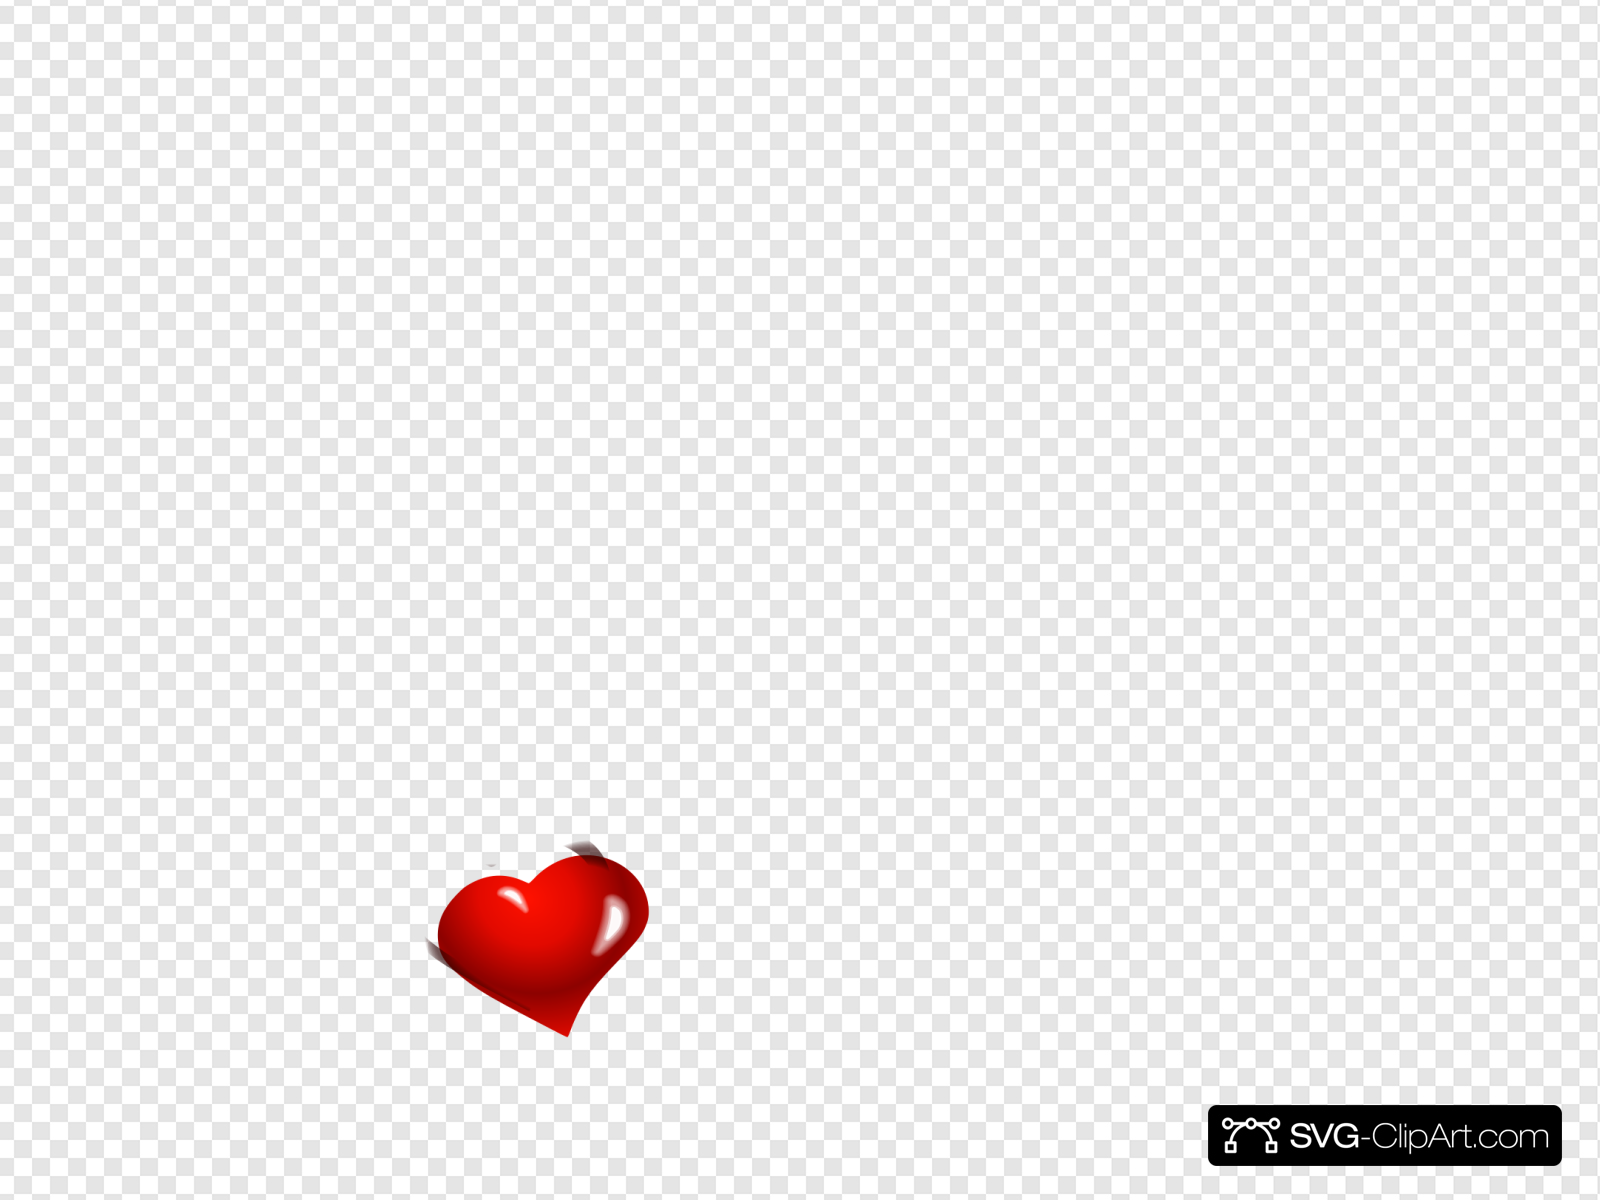 Small Heart Clip art, Icon and SVG